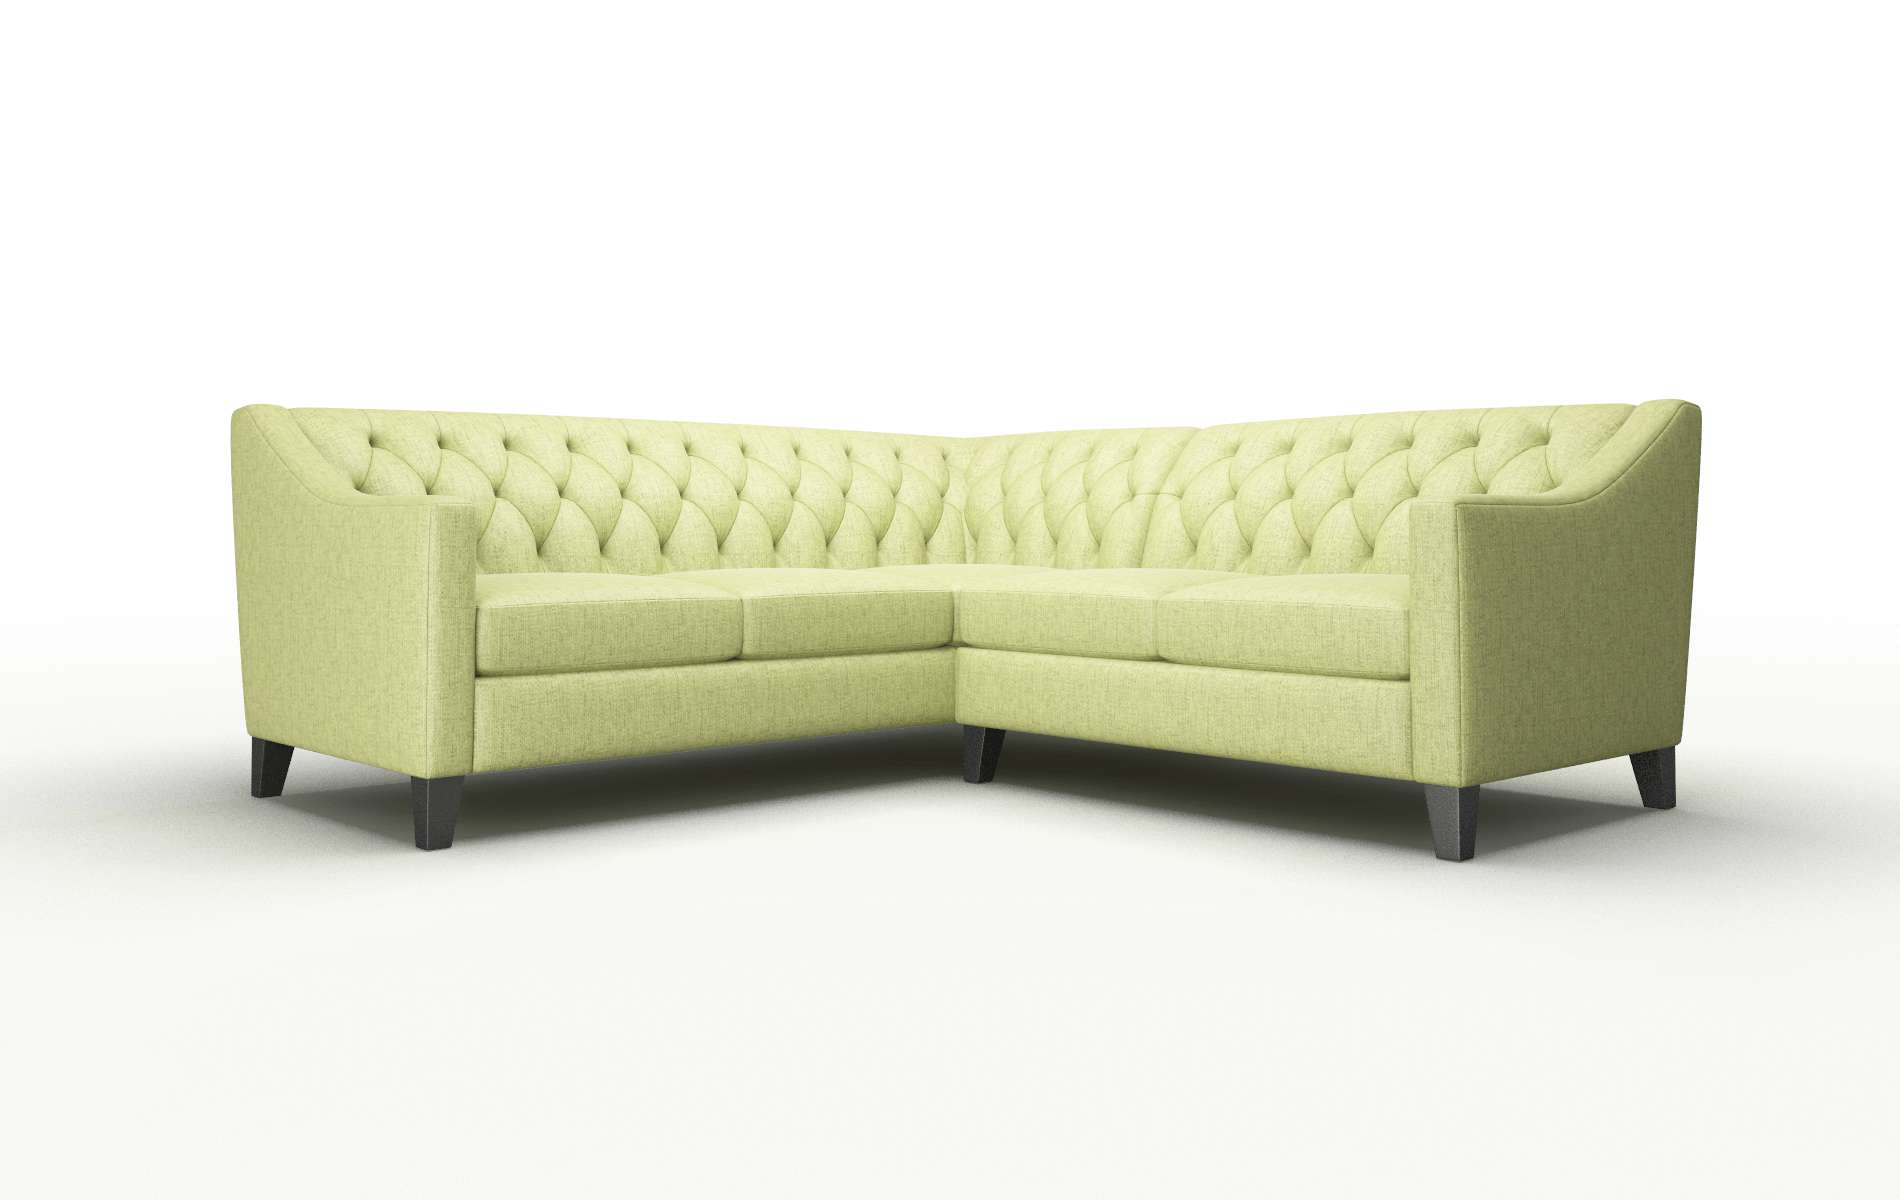 Seville Notion Appletini Sectional espresso legs 1